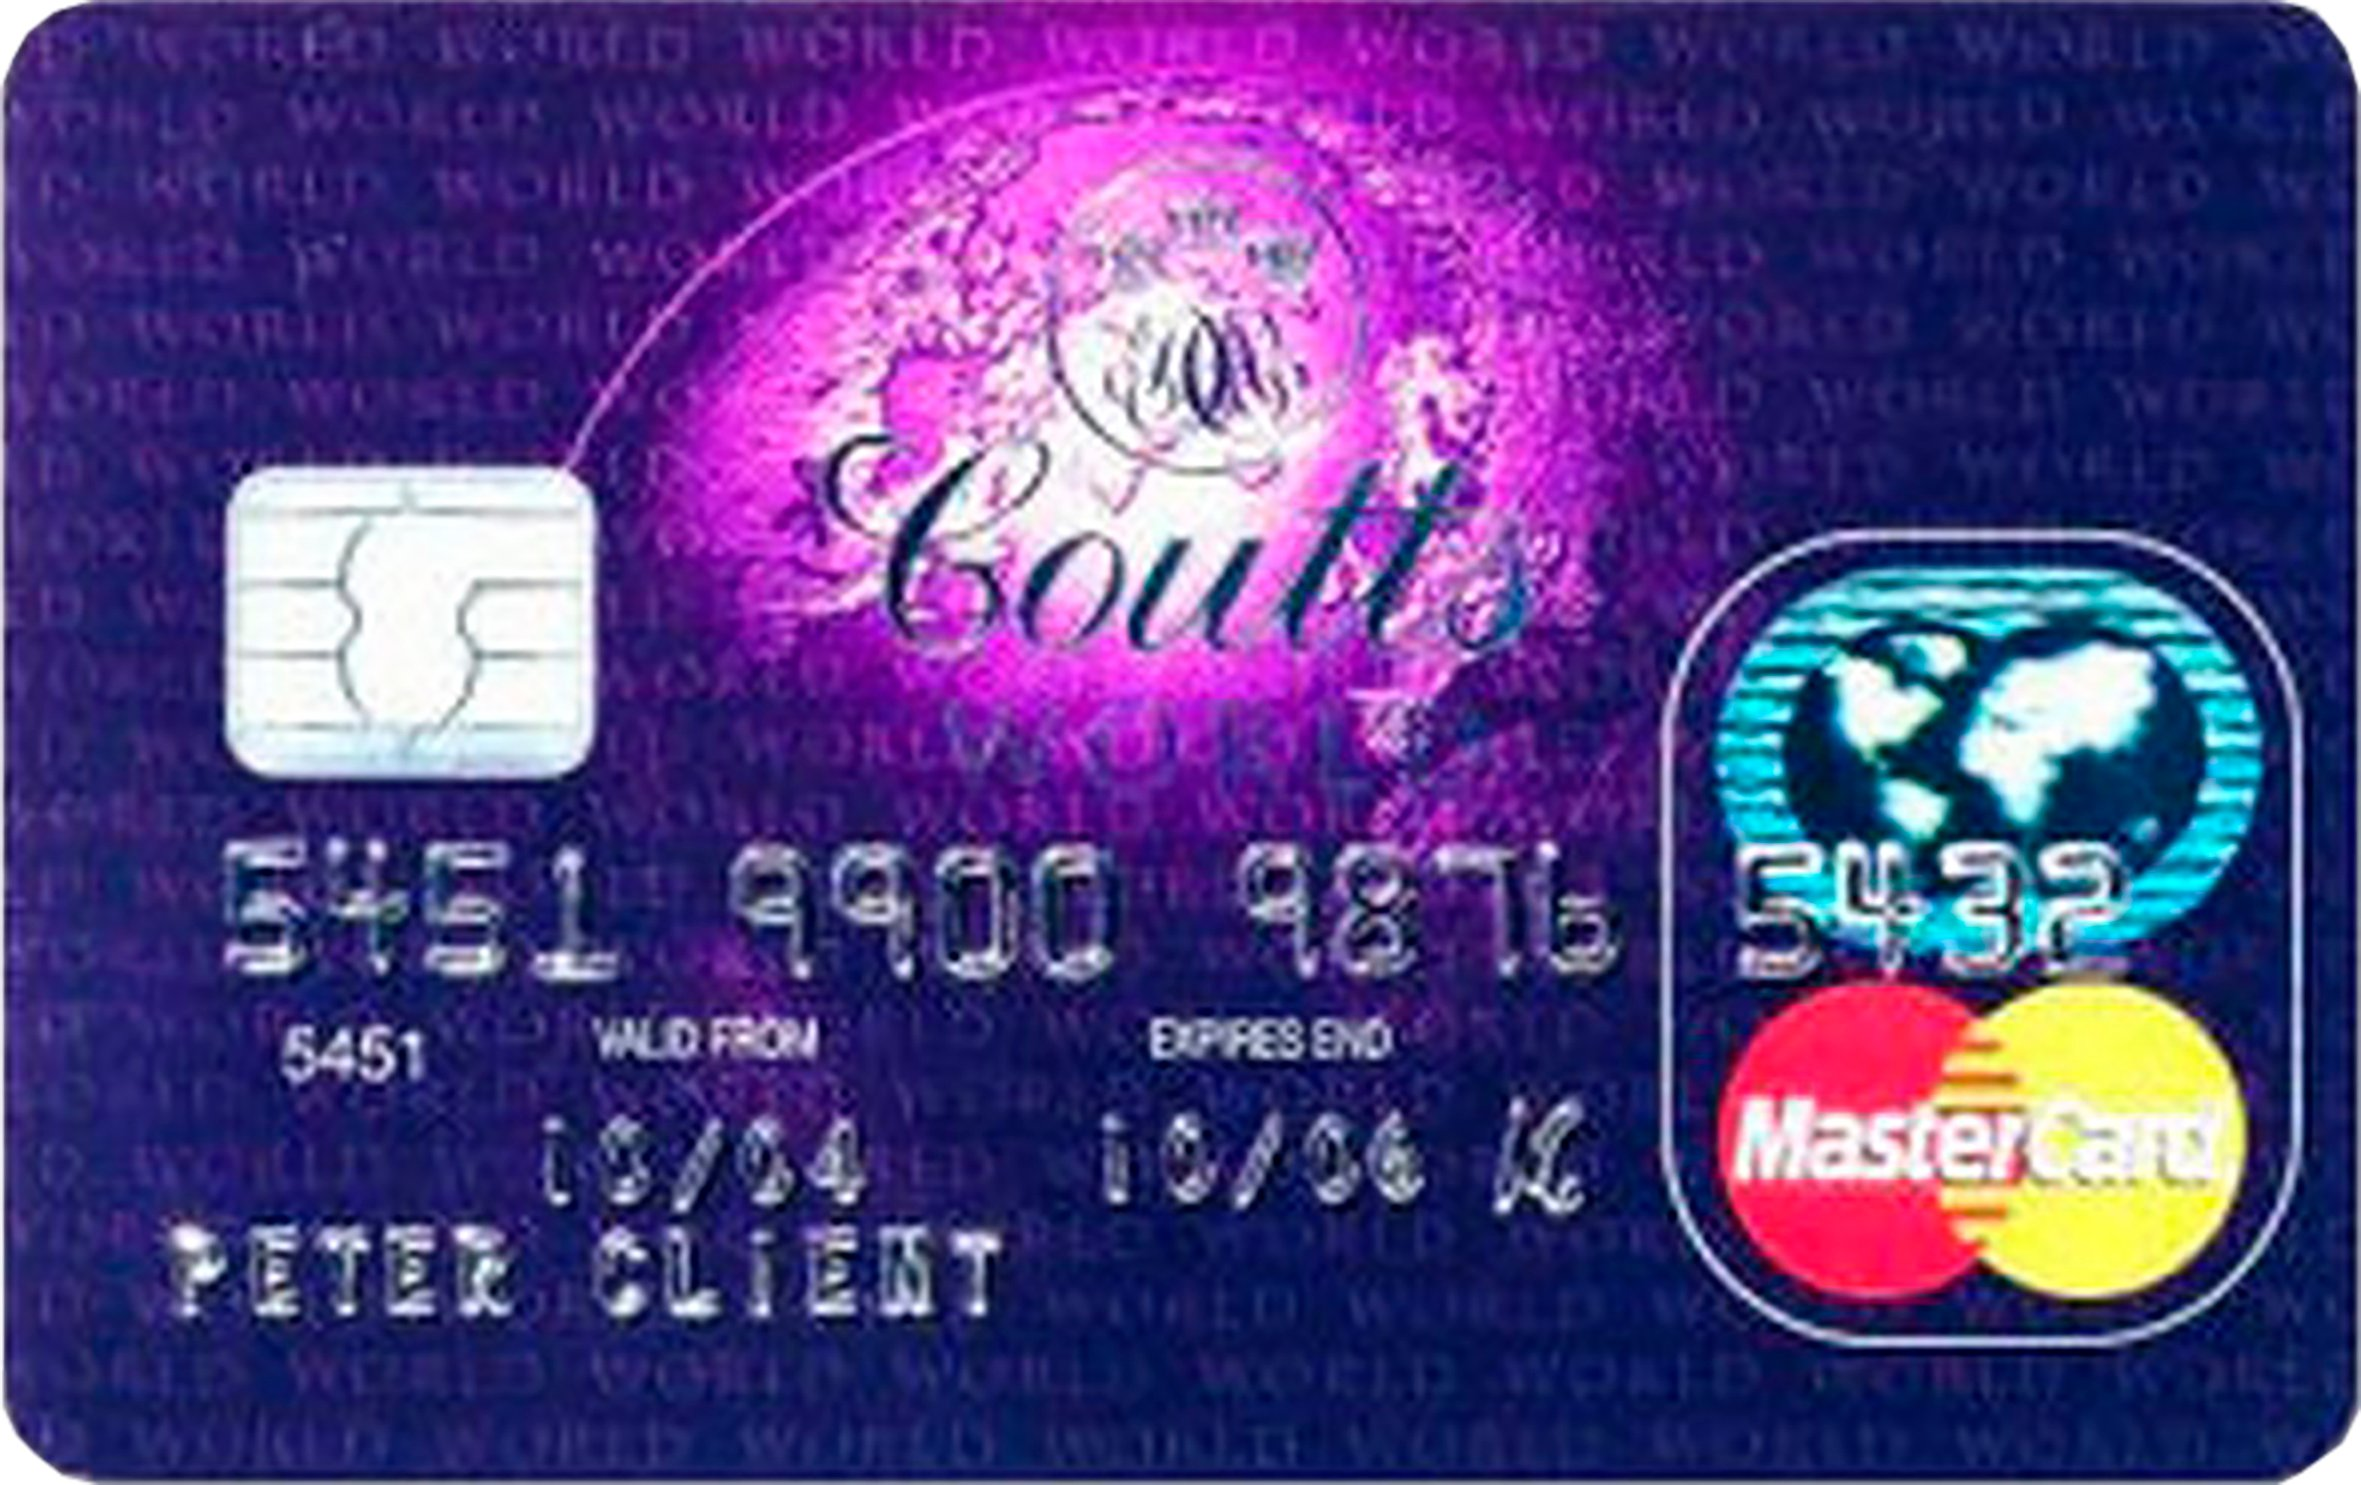 69a06bcbb3b 10 Most Exclusive Credit Cards Available in 2019